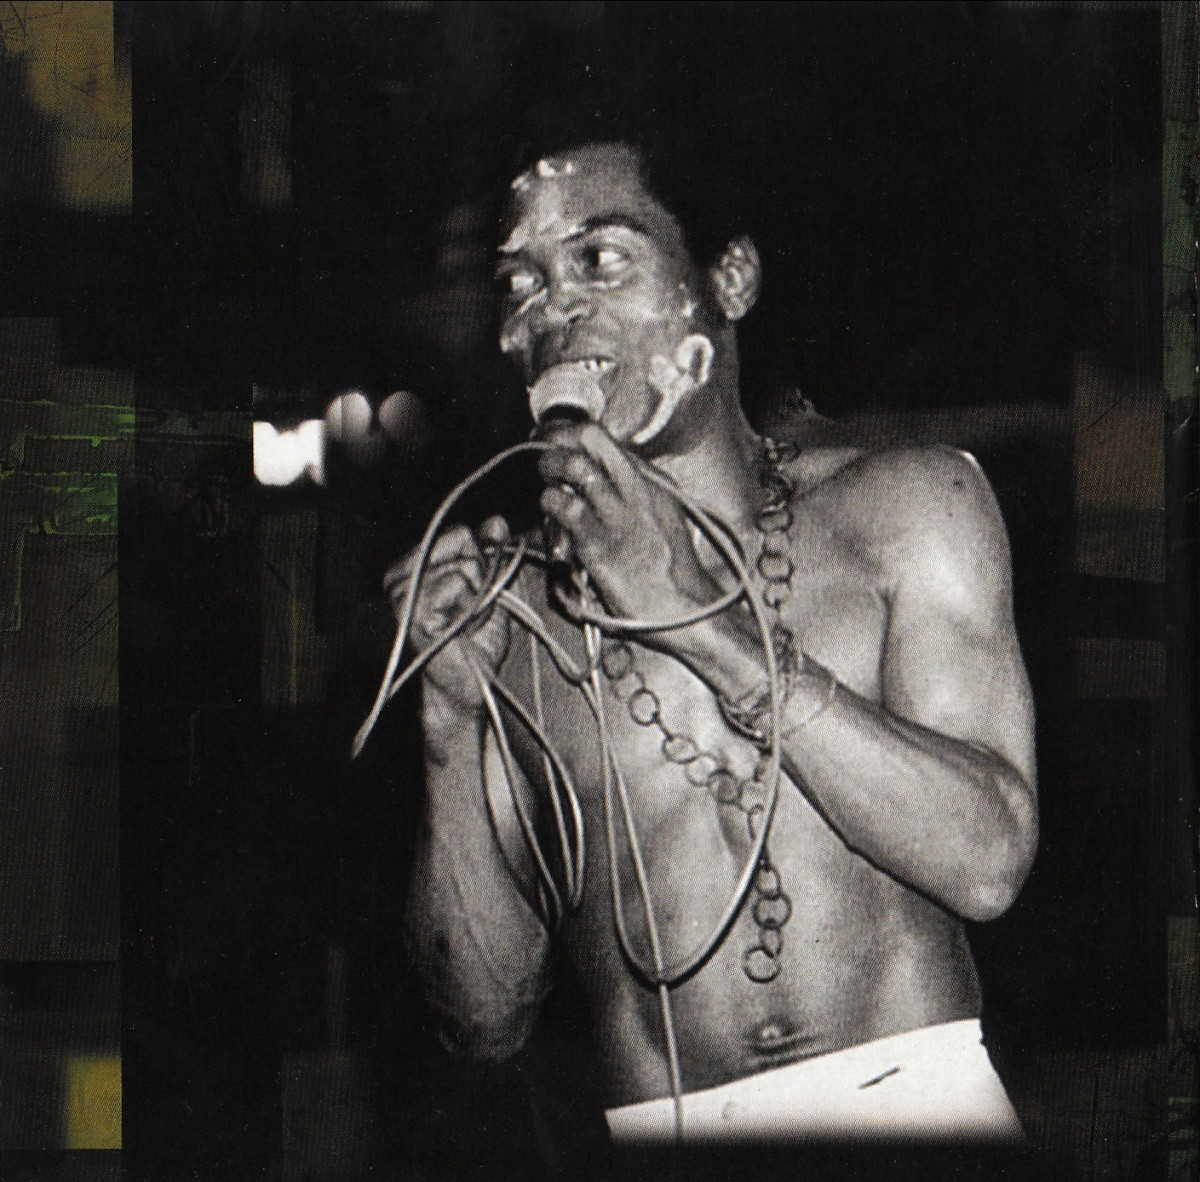 Performing live, Fela belts-out his lyrics in 'pidgin-English' and most of his songs very critical of the military regime in Nigeria